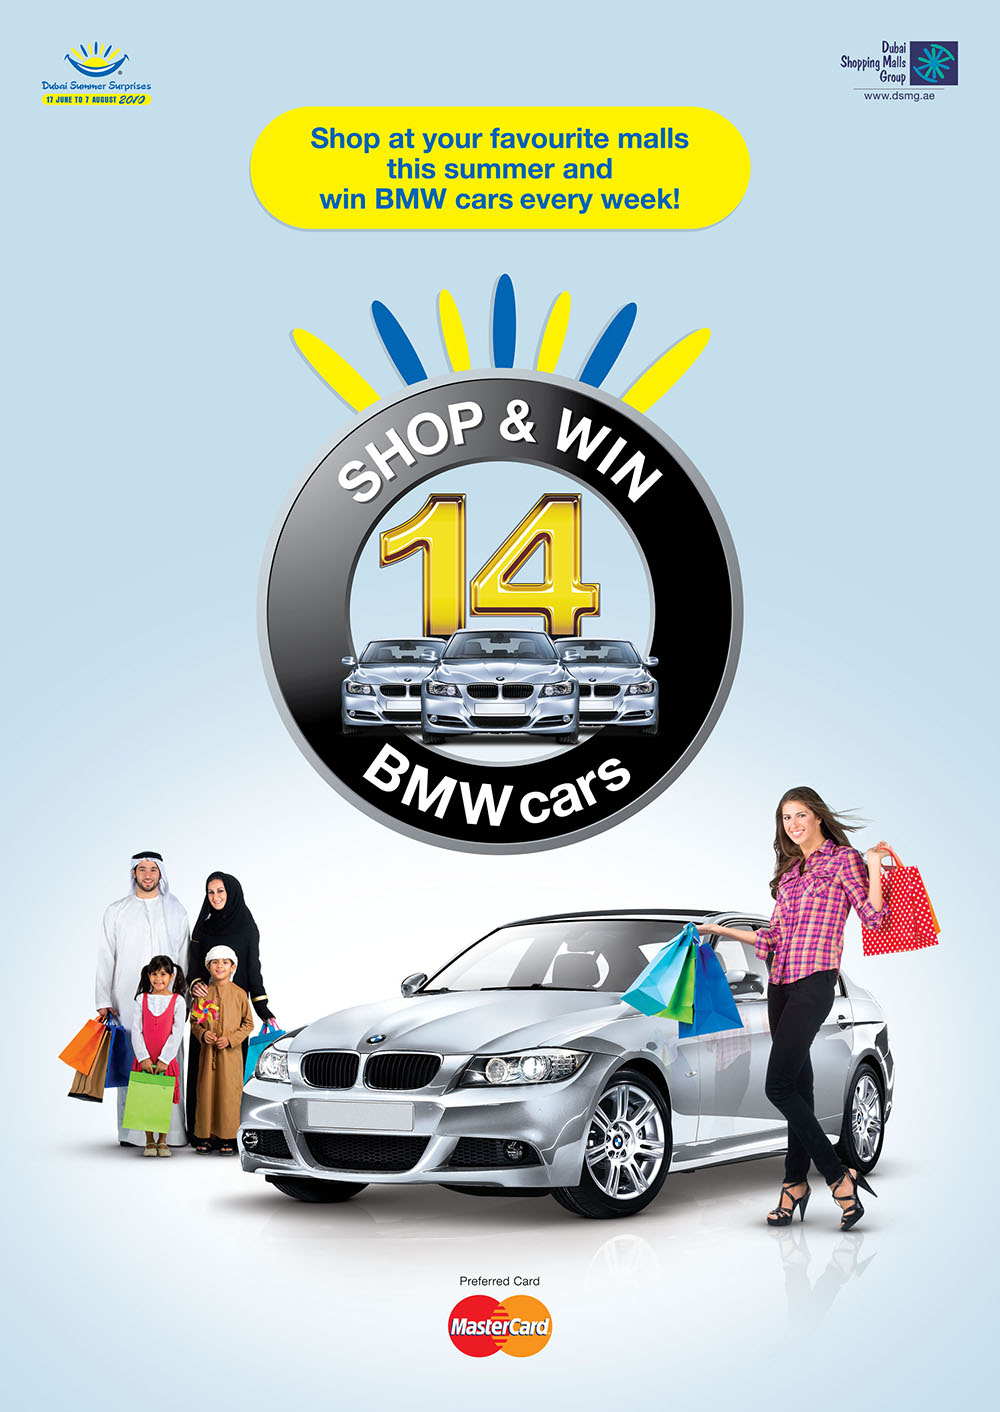 DSMG Shop and win BMW Car (Promotion)